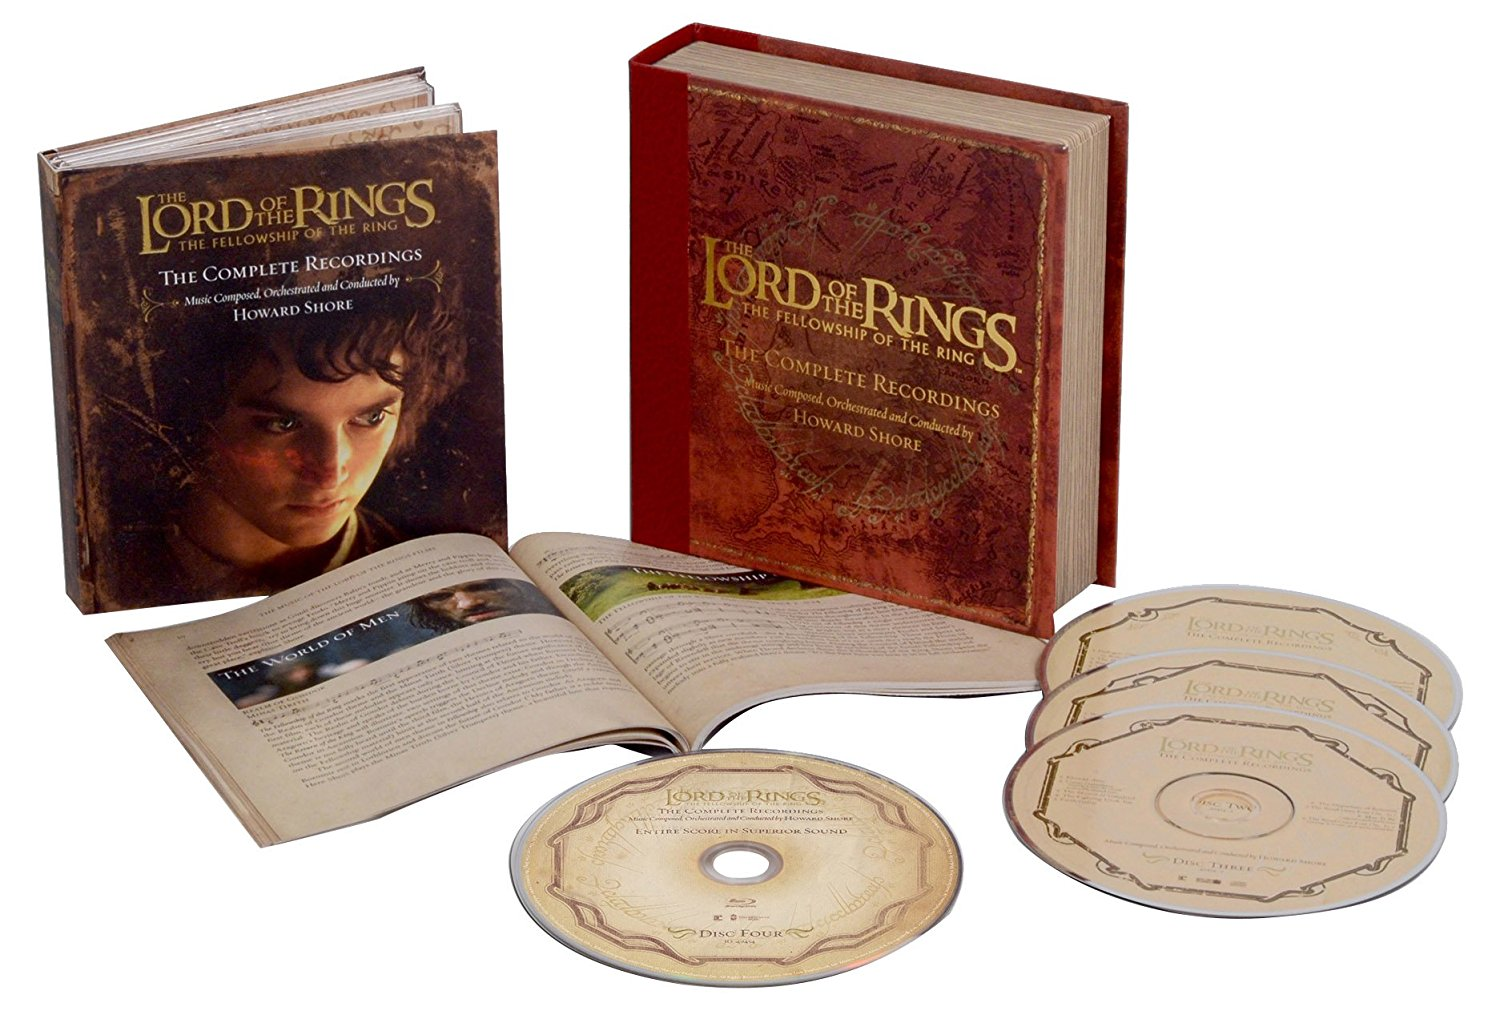 Lord of the rings (The): The fellowship of the ring - Il Signore degli anelli: La compagnia dell'anello - Complete Recordings